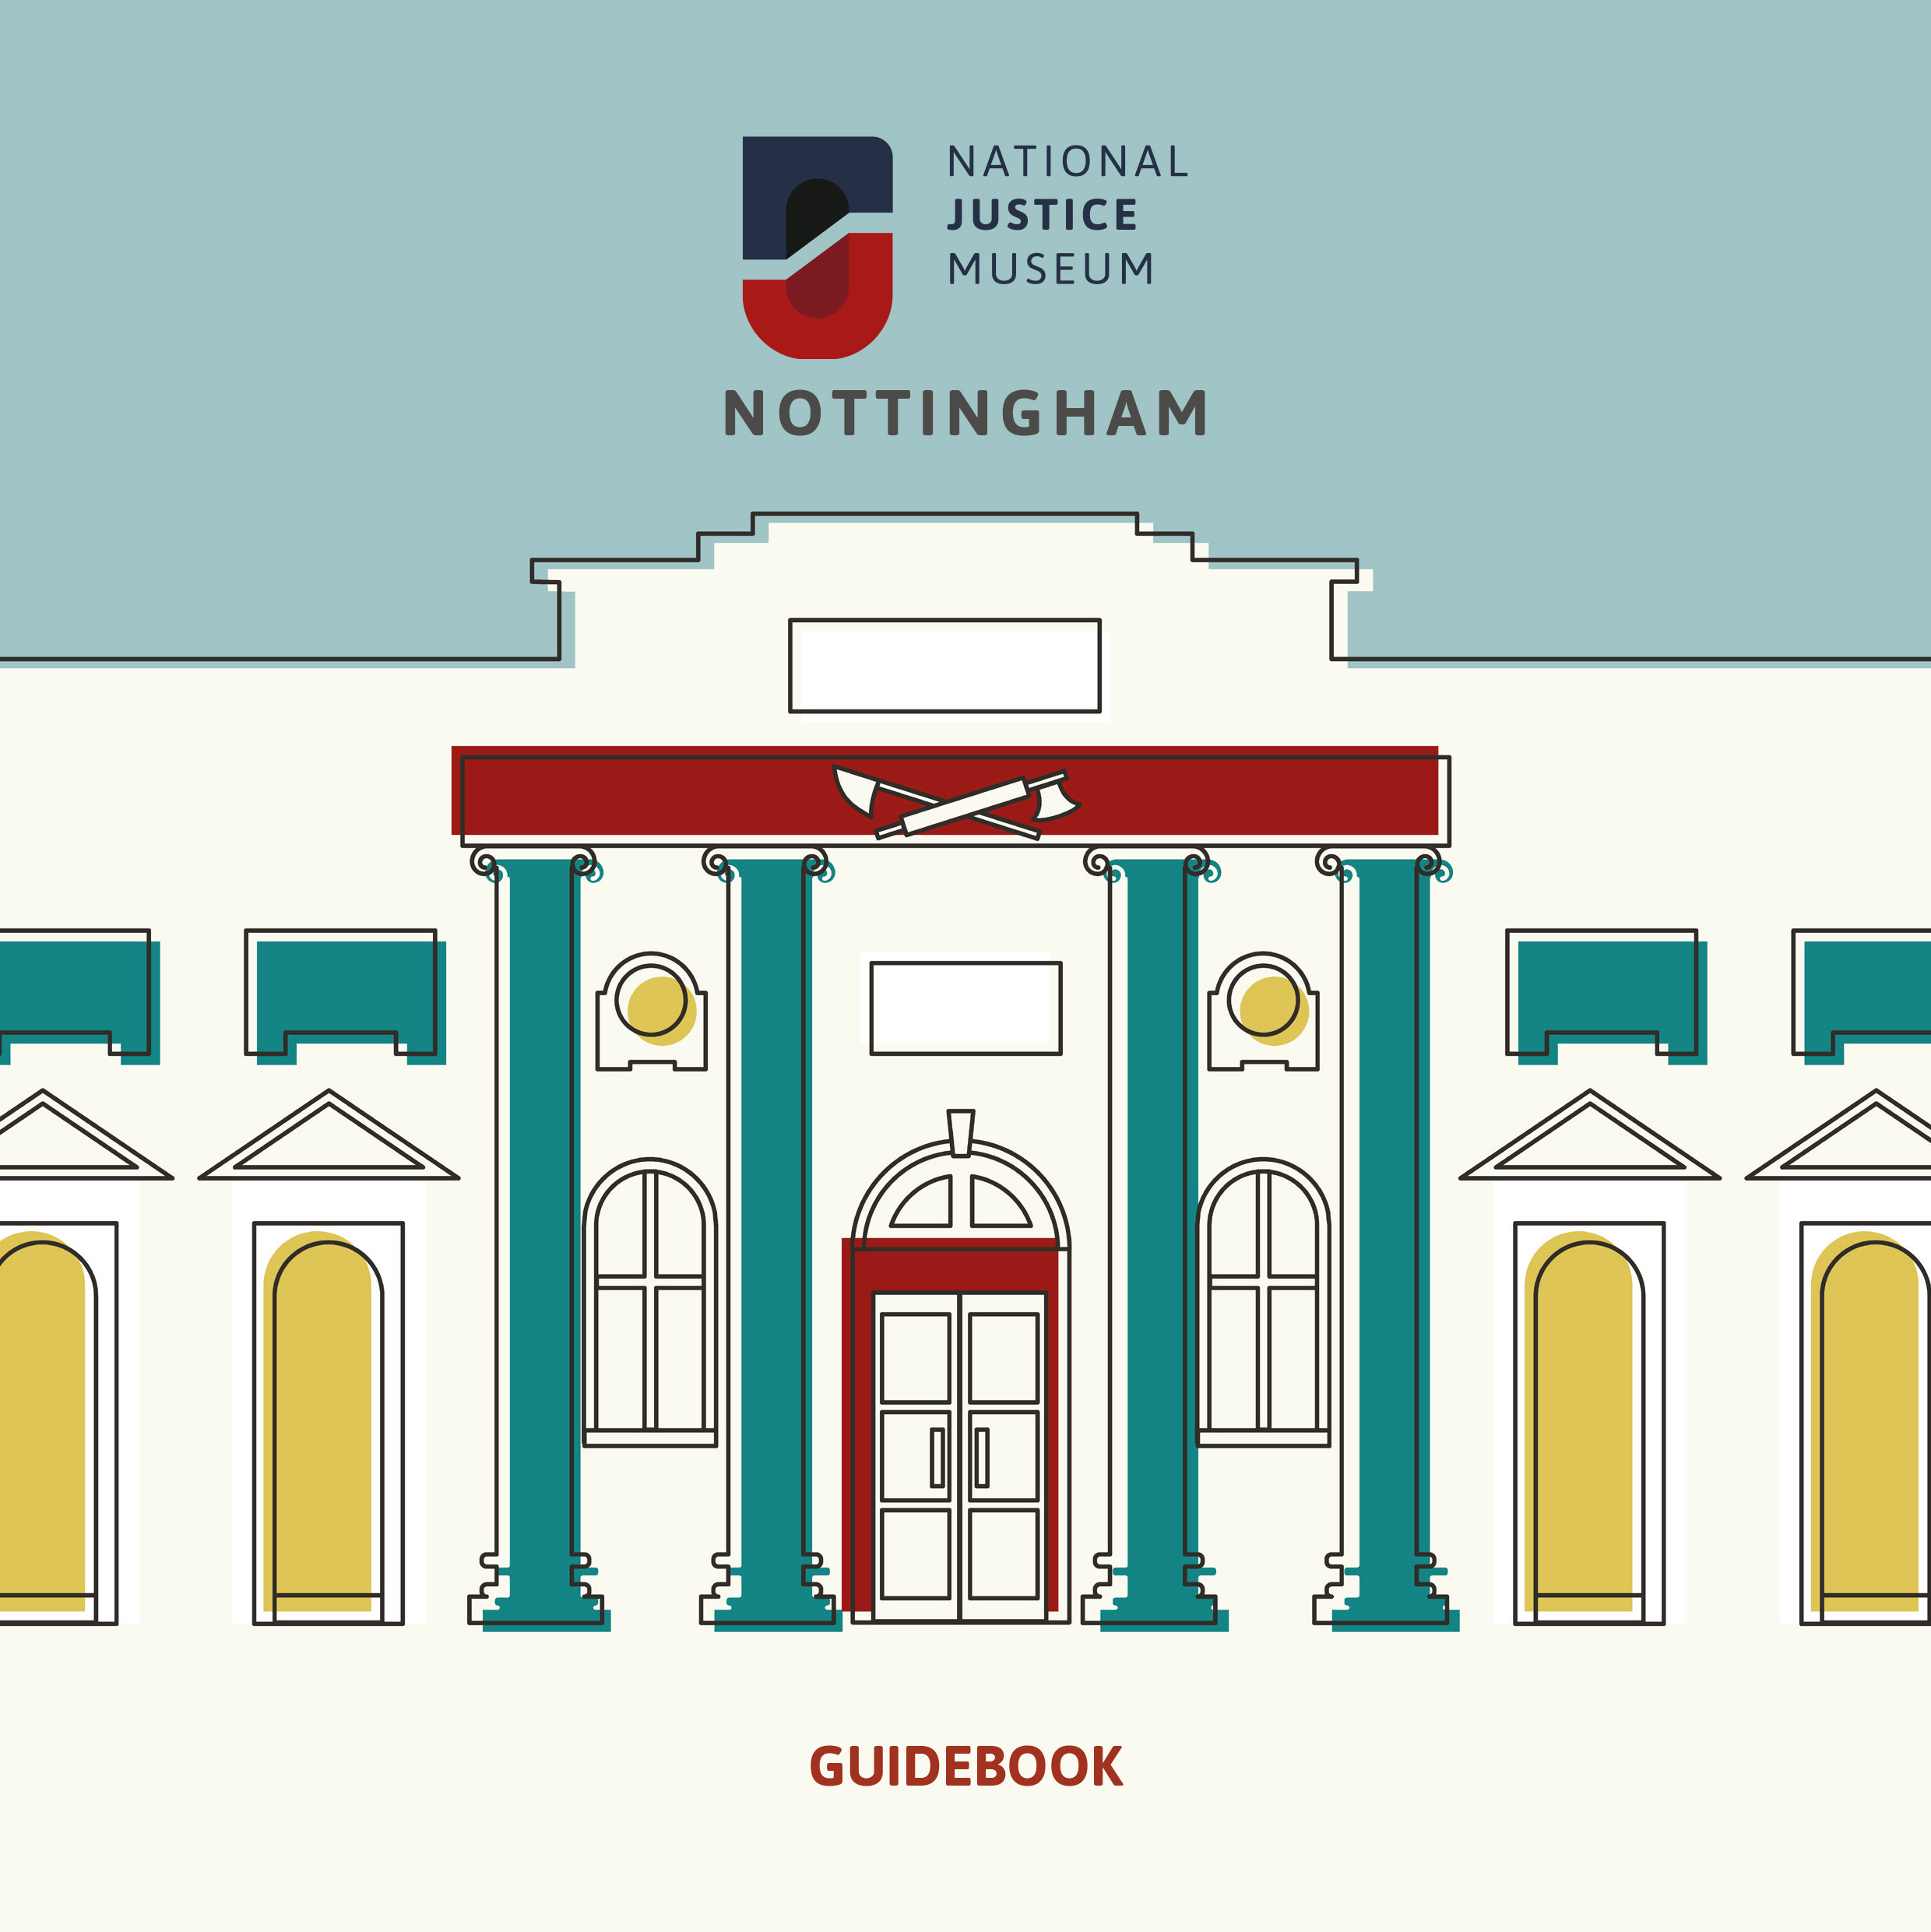 National Justice Museum Guidebook